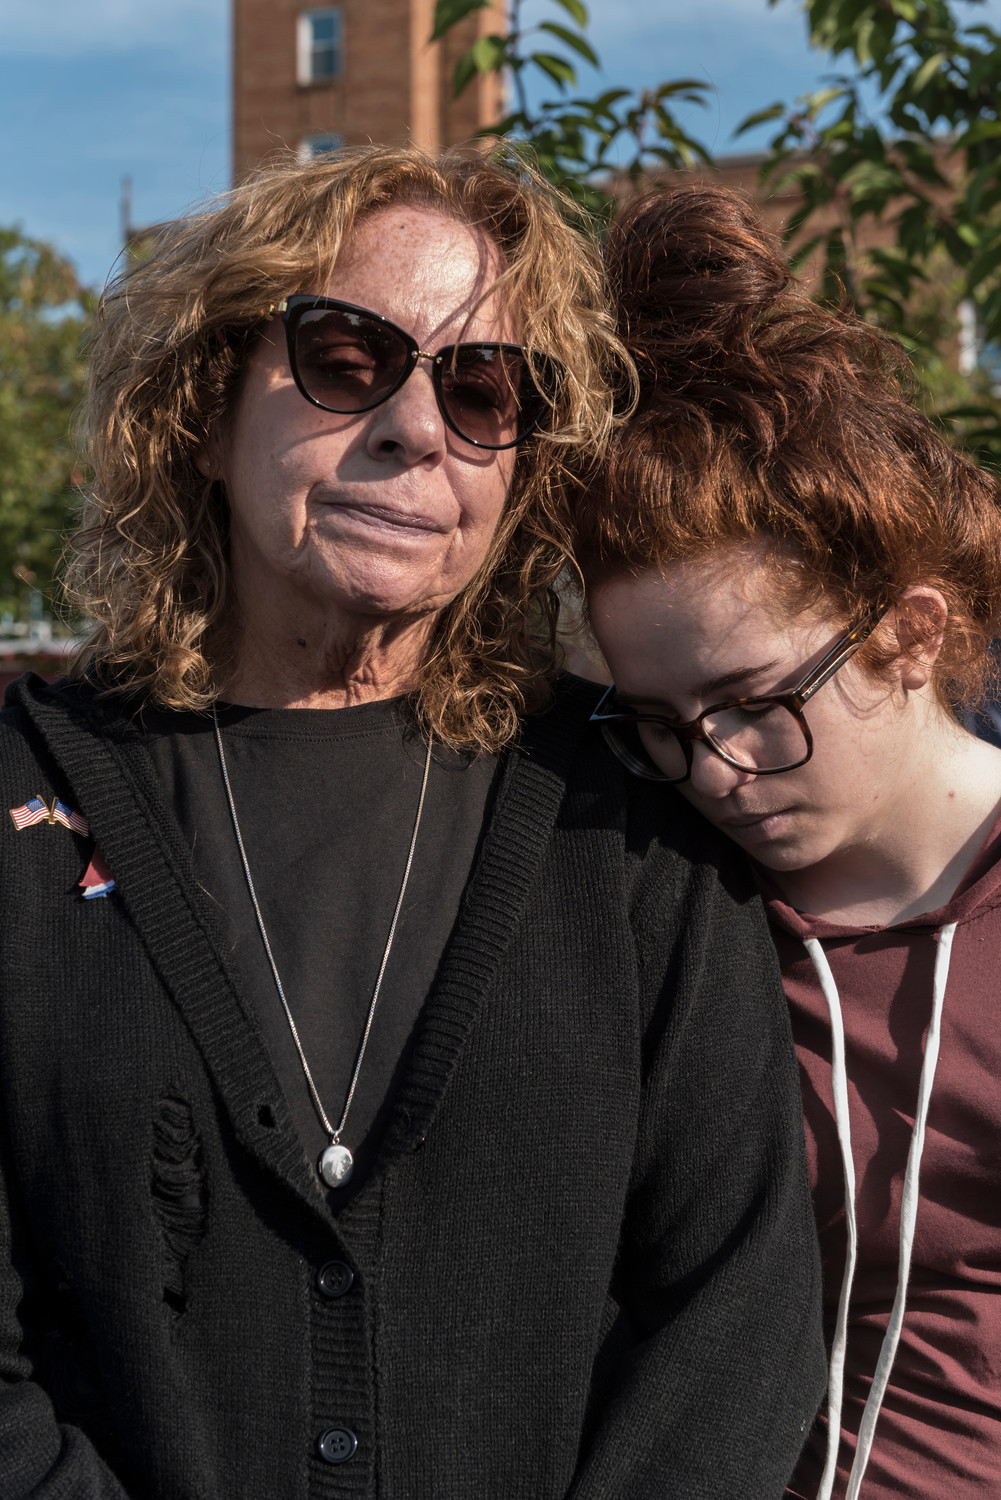 Tina Zuccala Cammarata & daughter Christina.Tina's brother Joseph Zuccala died when the 2nd plane hit the tower.